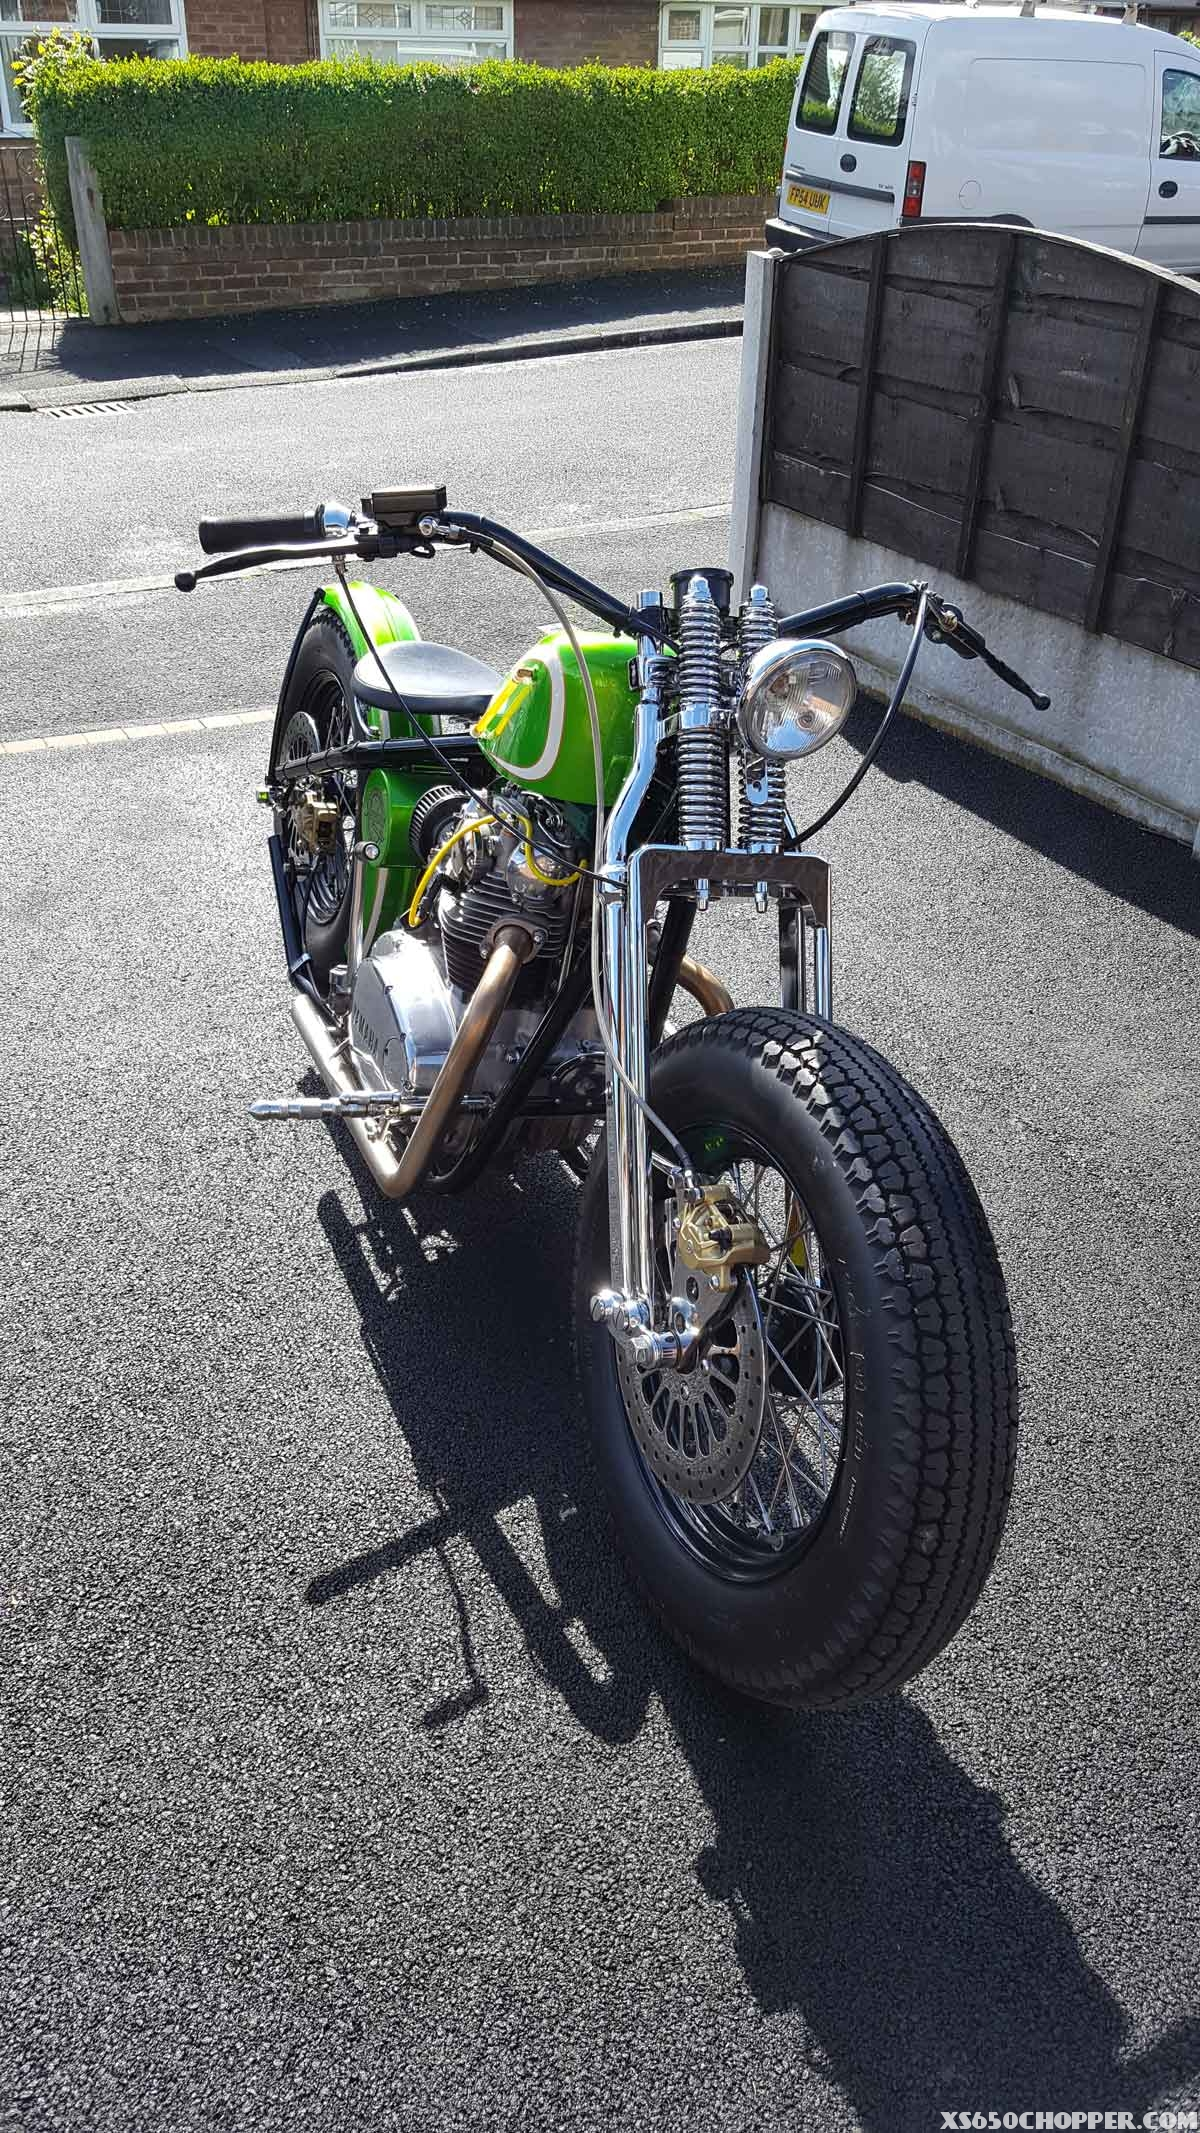 Most Design Ideas Handmade Handlebars Bobber Pictures, And